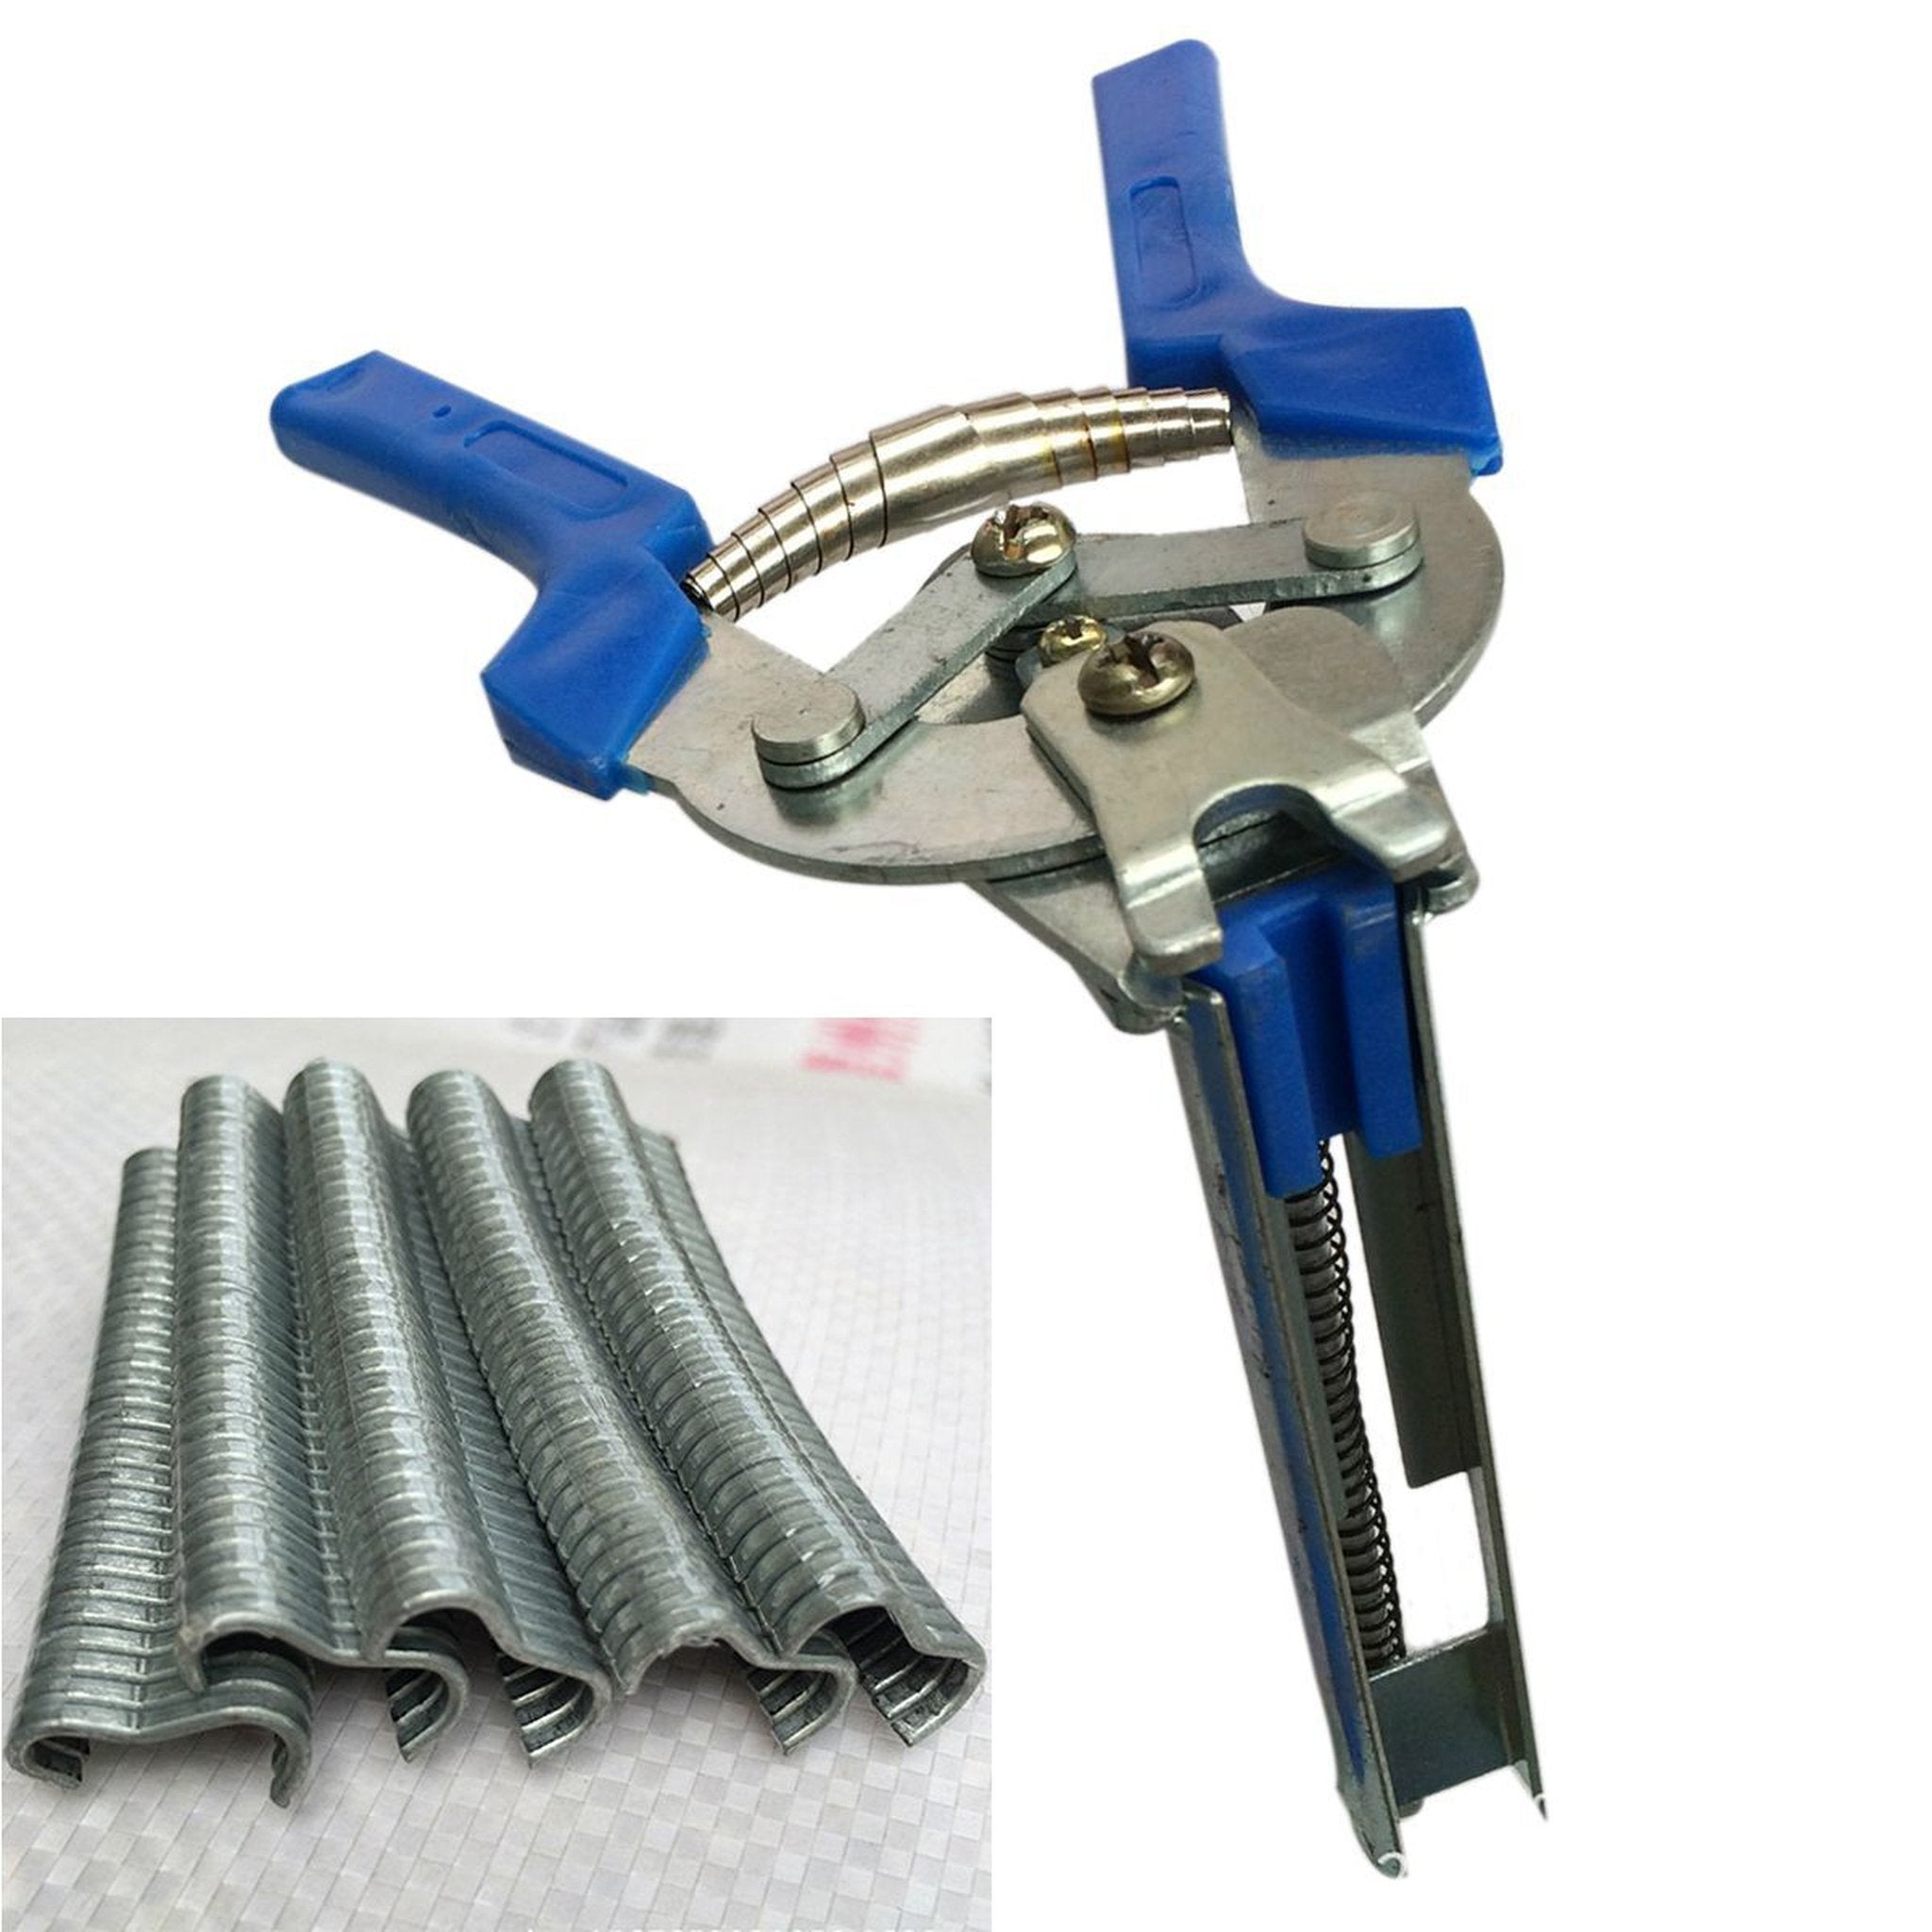 Hog Ring Pliers For Wire Fencing for $26.99